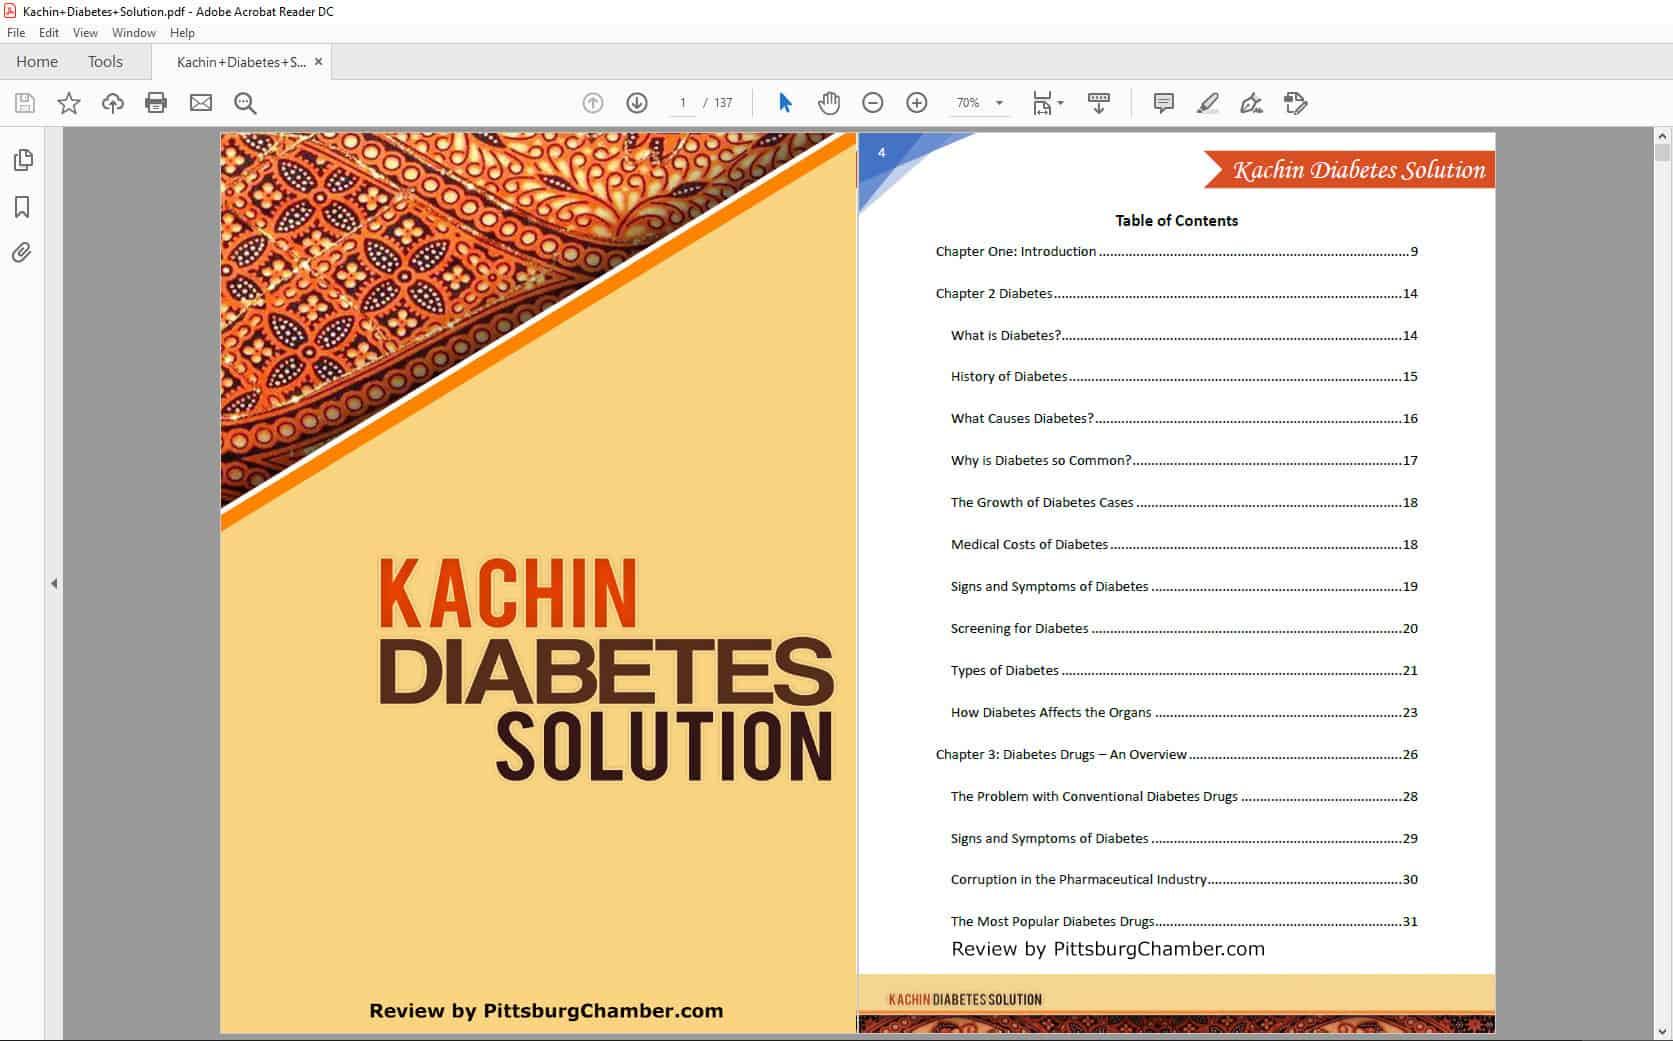 Kachin Diabetes Solution Table of Contents